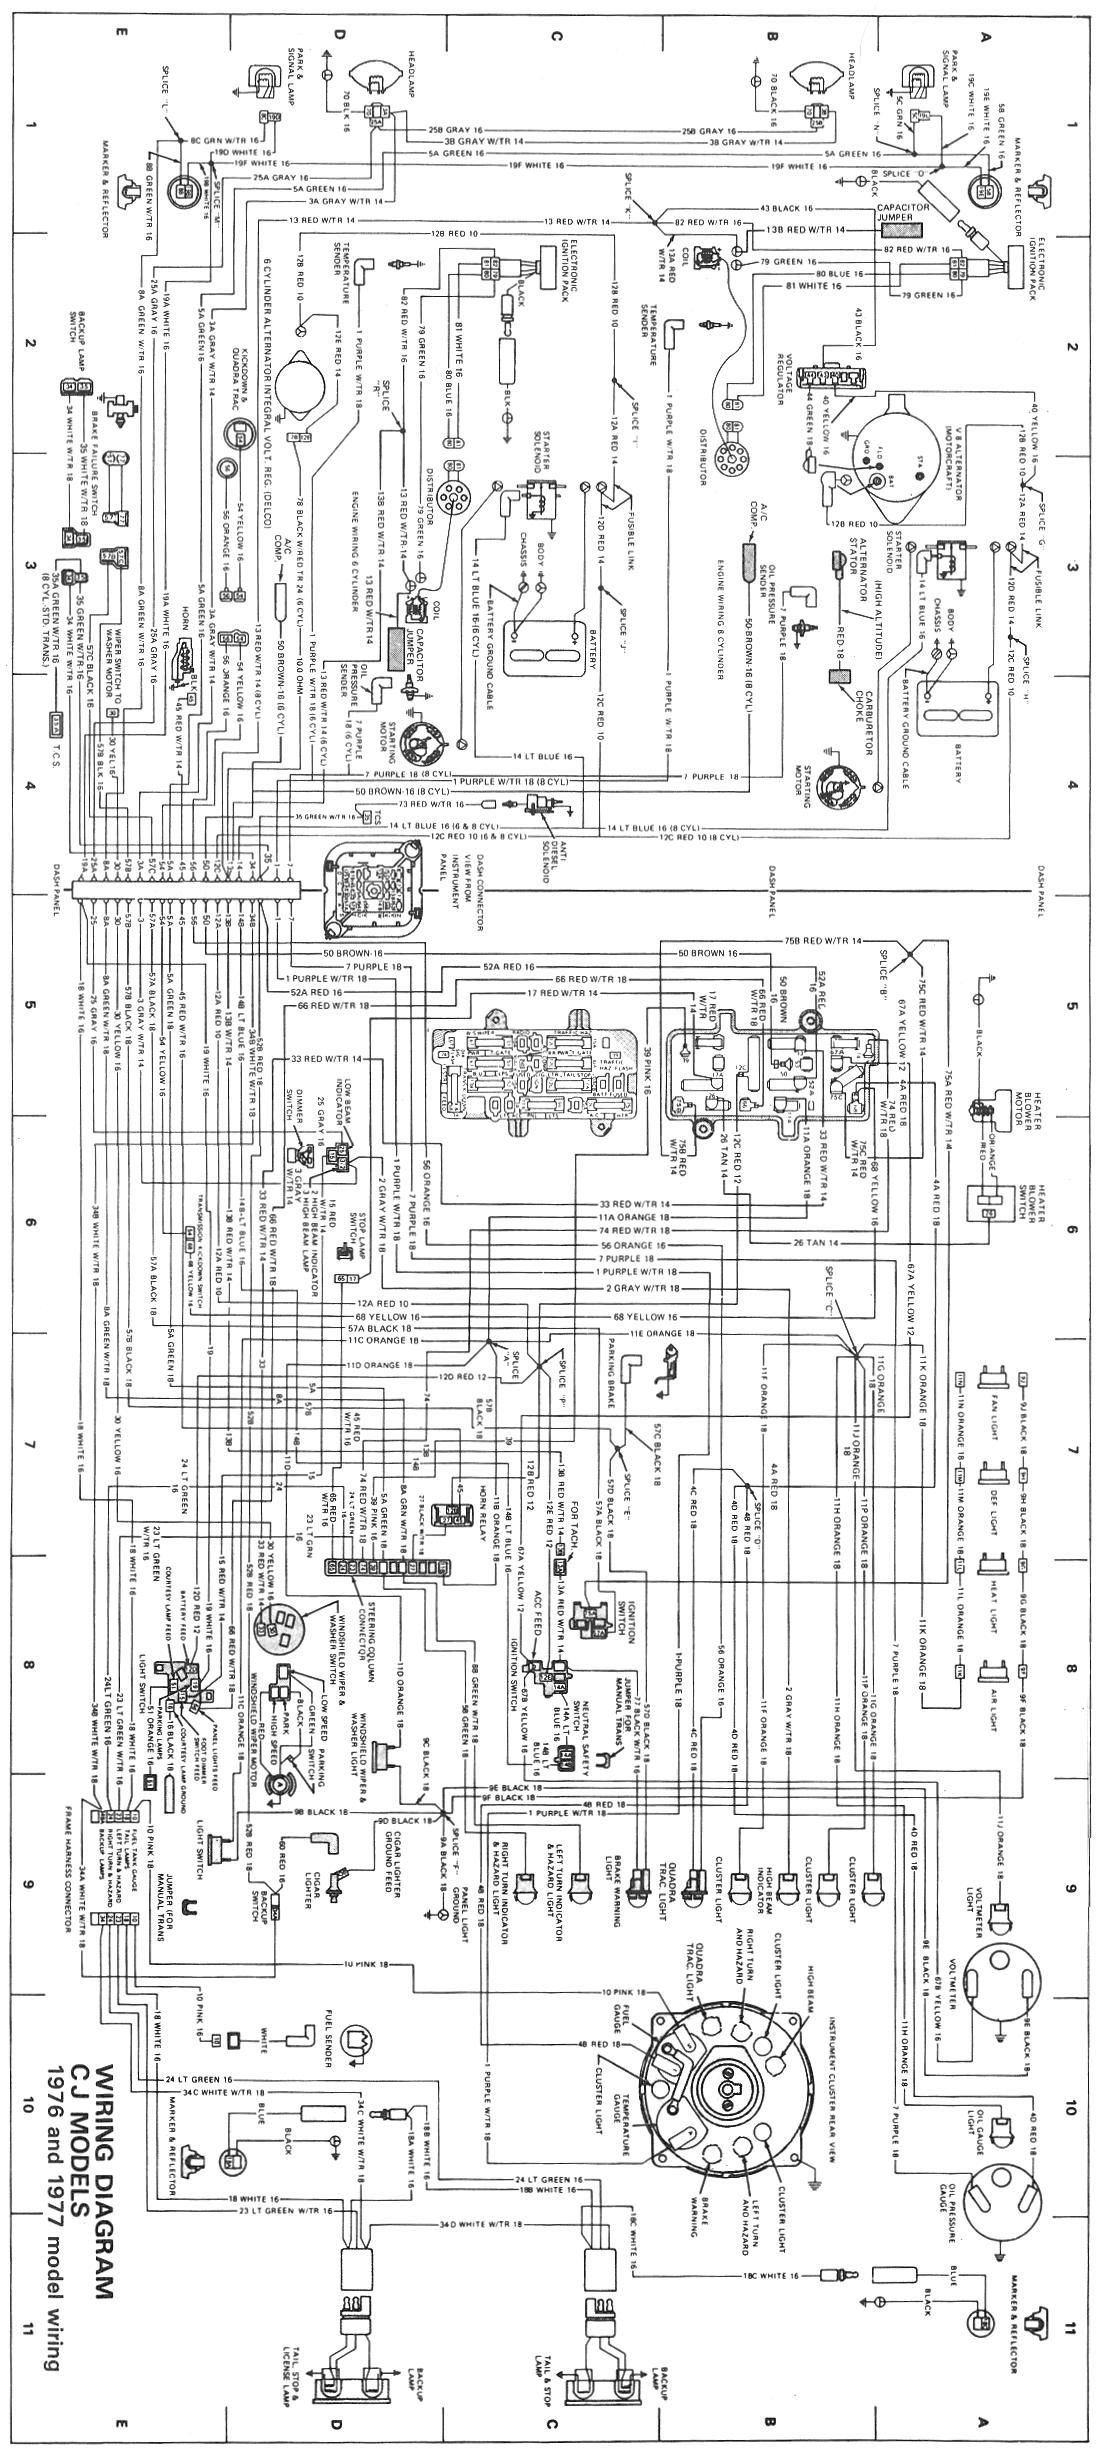 CJ-Wiring-Diagram-1976-1977.jpg 1,100×2,459 pixels | Jeep cj7, Jeep, Jeep  cj5Pinterest